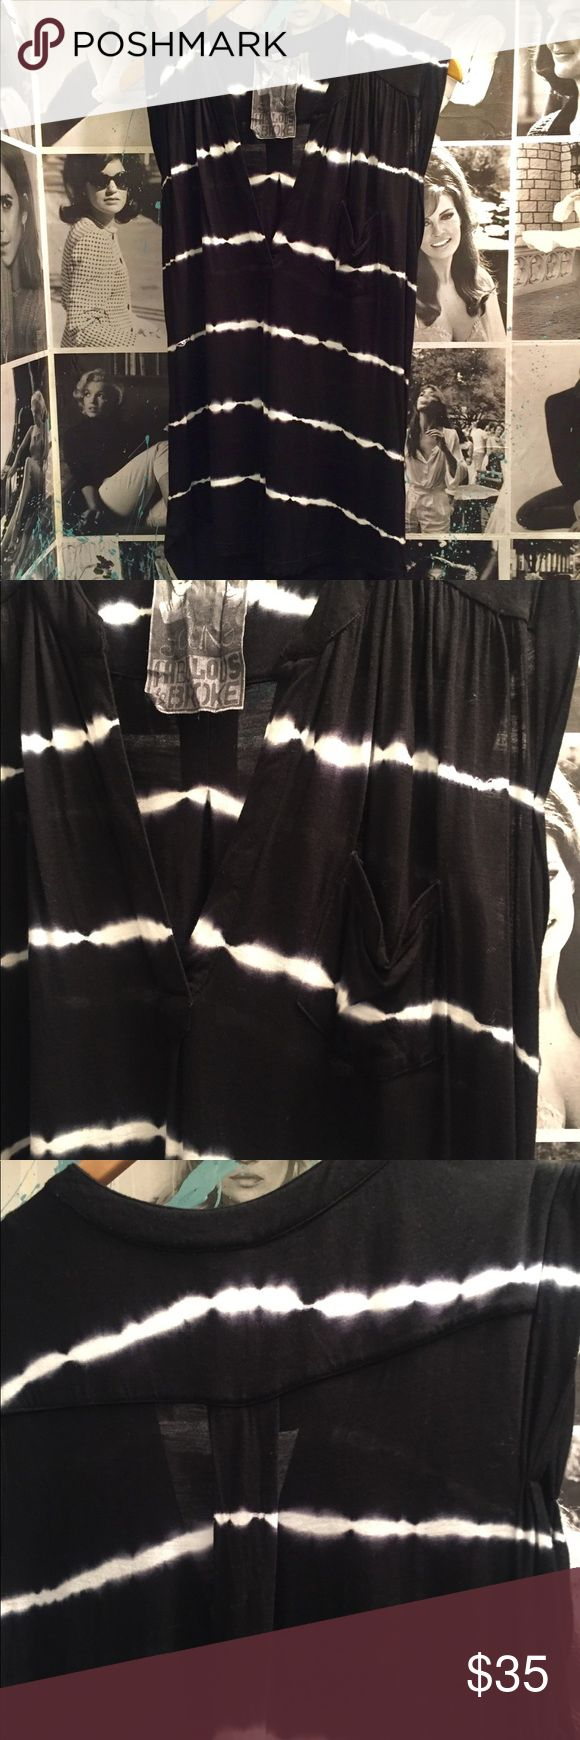 Young, Fabulous and Broke Soft Tie Dye v neck tank Super soft tank from Young, Fabulous and Broke. V neck front, sleeveless, black and white tie dye print, slightly longer in the back Young Fabulous & Broke Tops Blouses